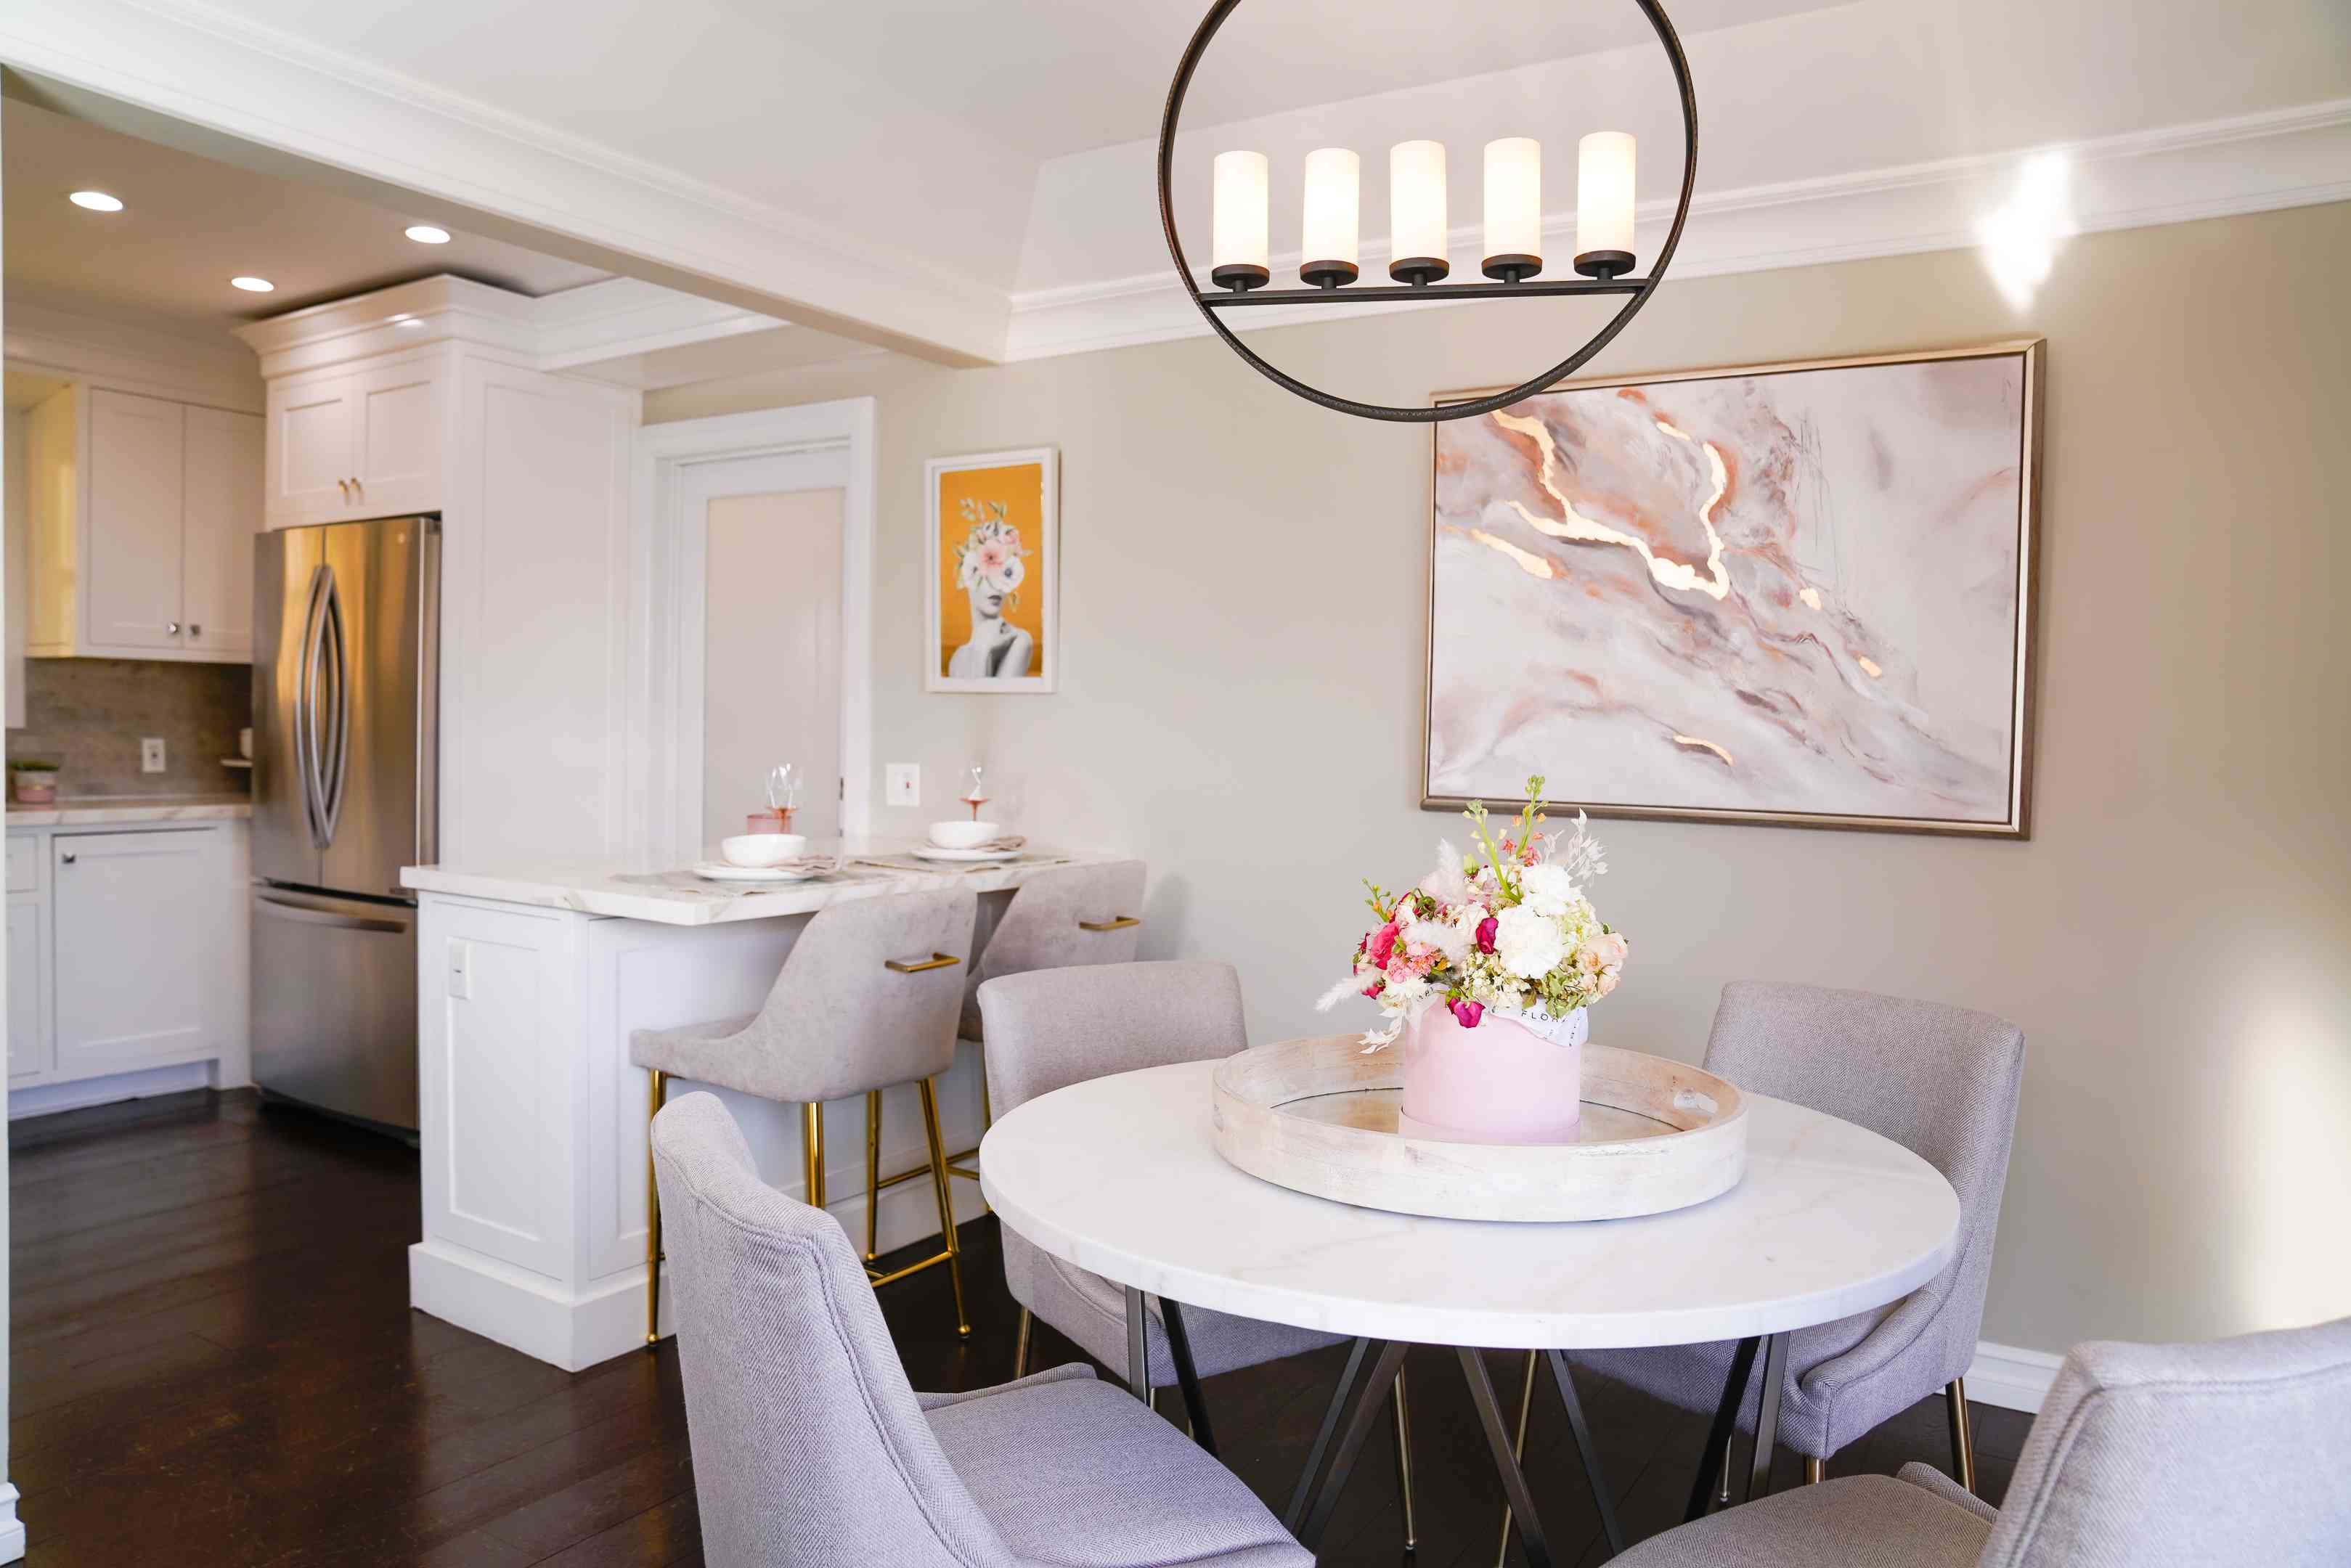 Chrishell Stause's new dining nook/kitchen bar with updates from T.J.Maxx and Marshalls